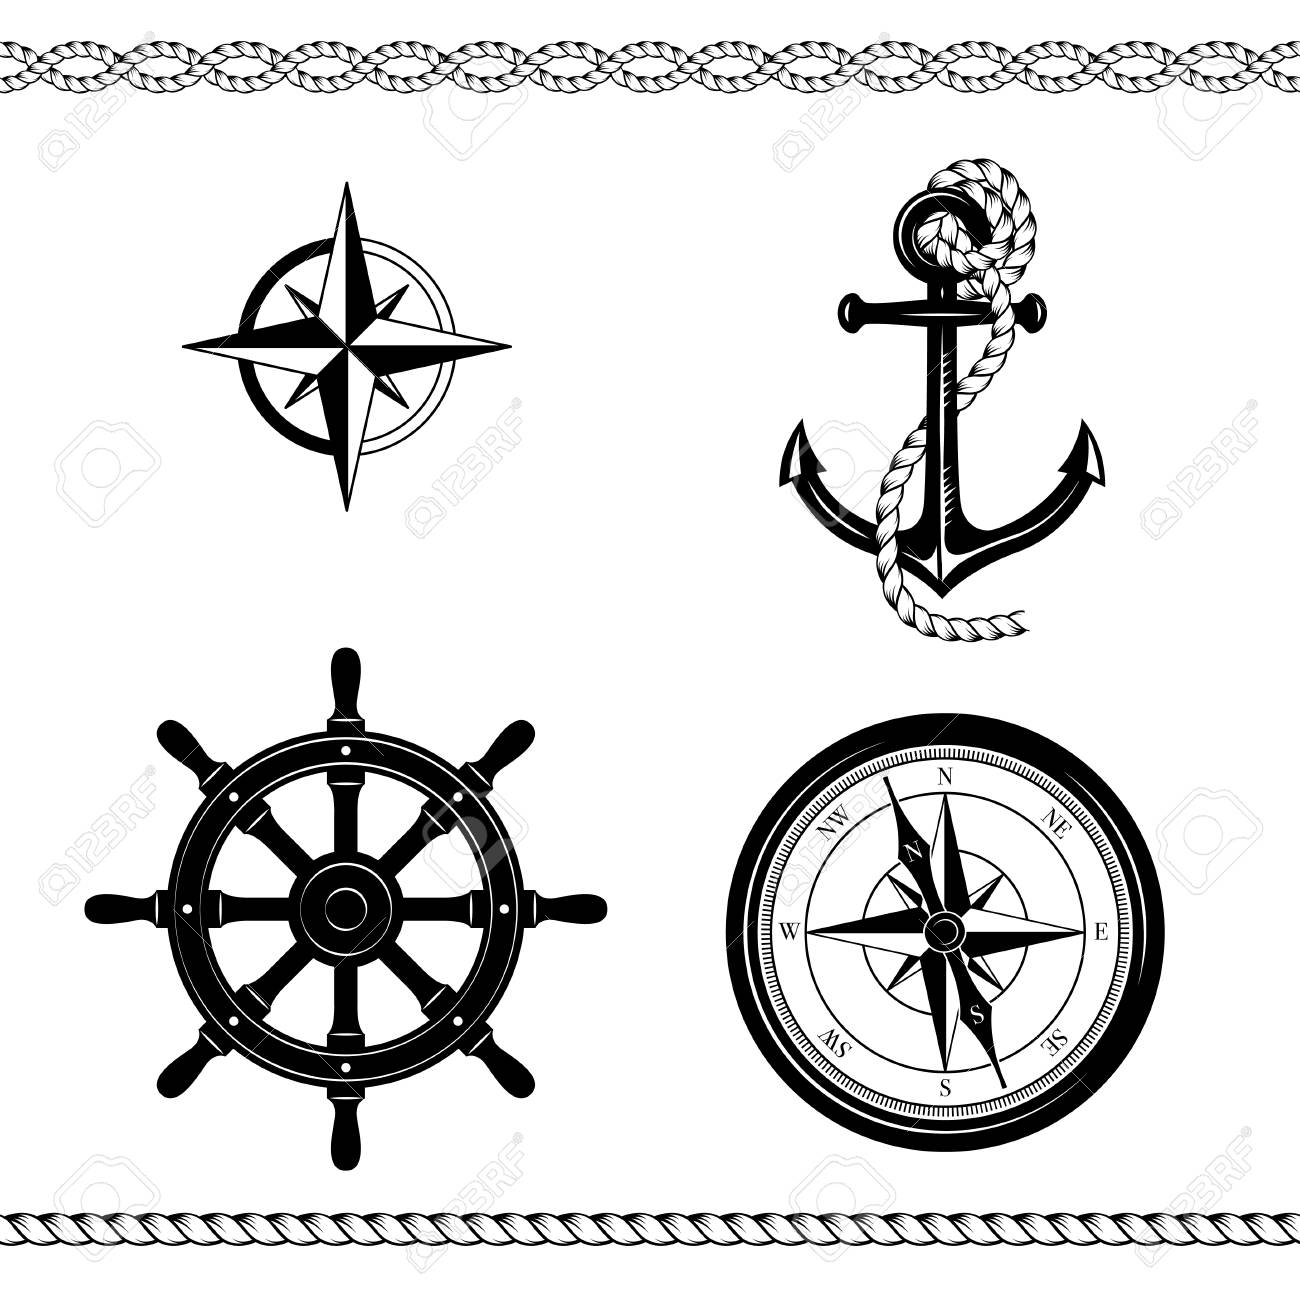 Set of nautical symbols. Anchor, ship steering wheel, rose of wind, ship steering wheel, borders. Black and white colors. - 127679804